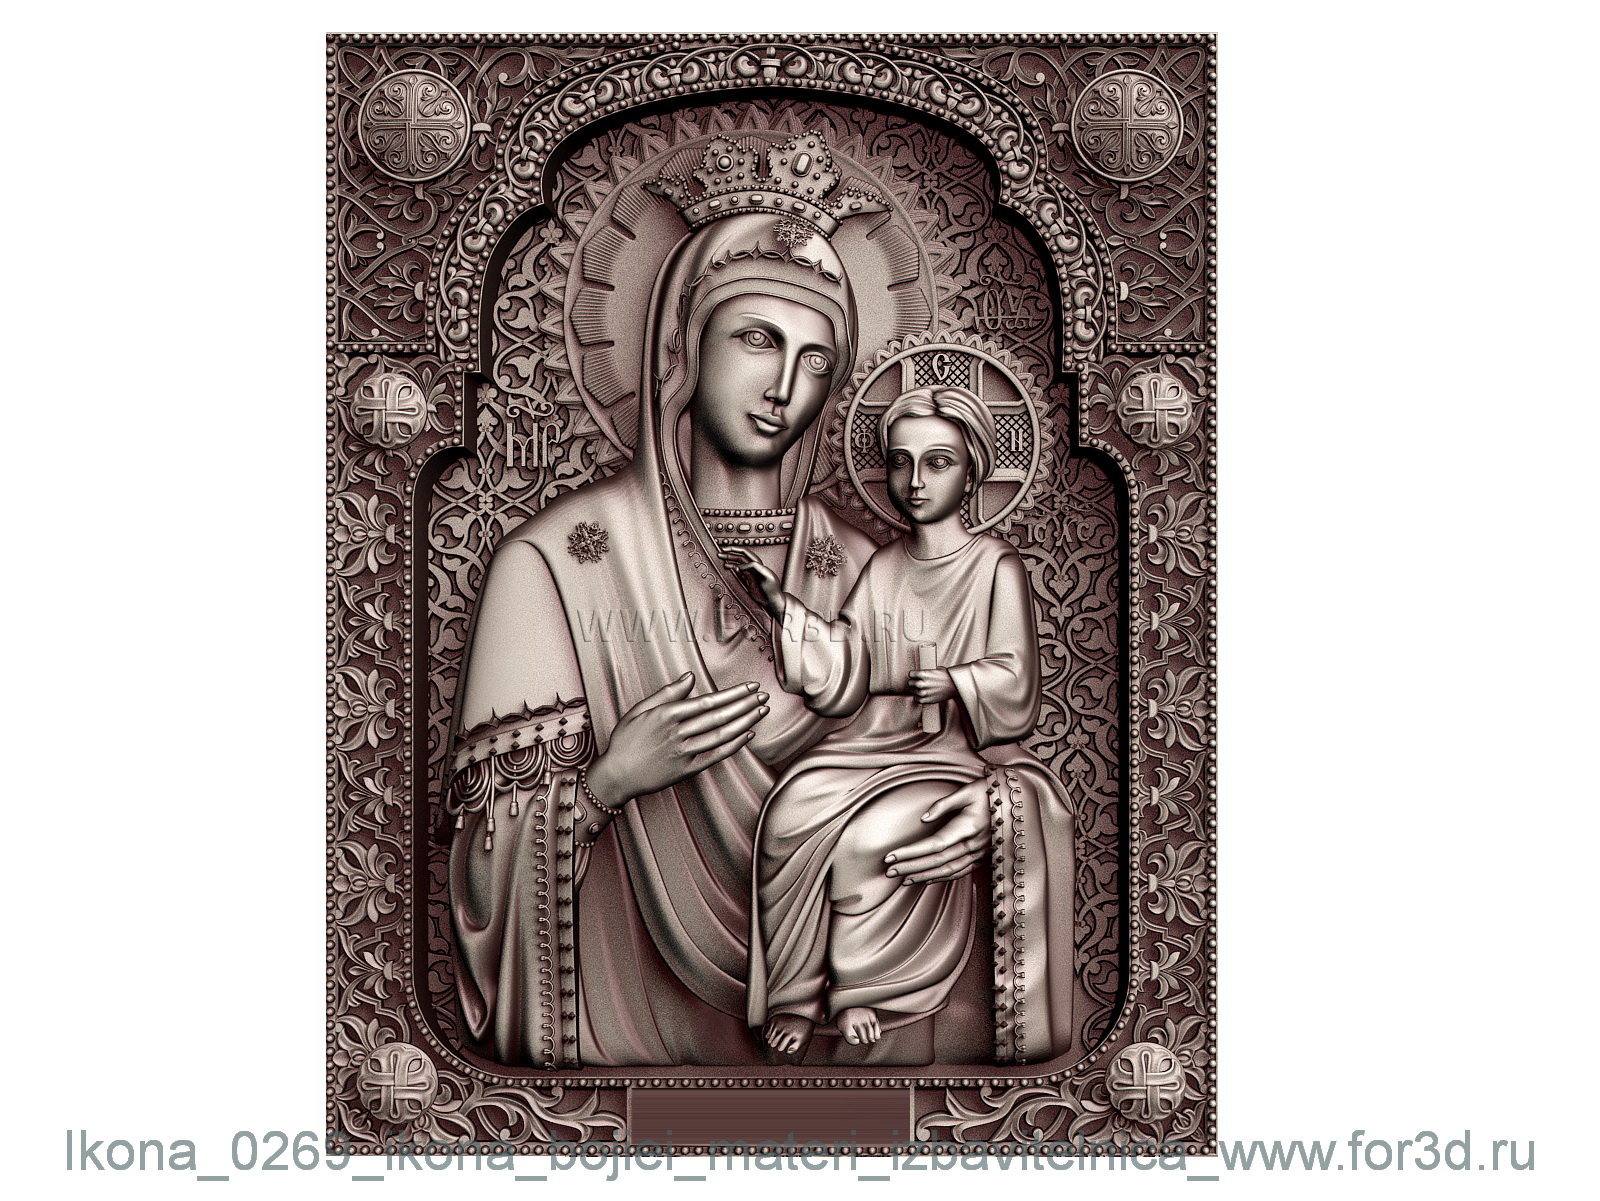 Icon 0269 of Our Lady deliverer | stl - 3d model stl model for CNC